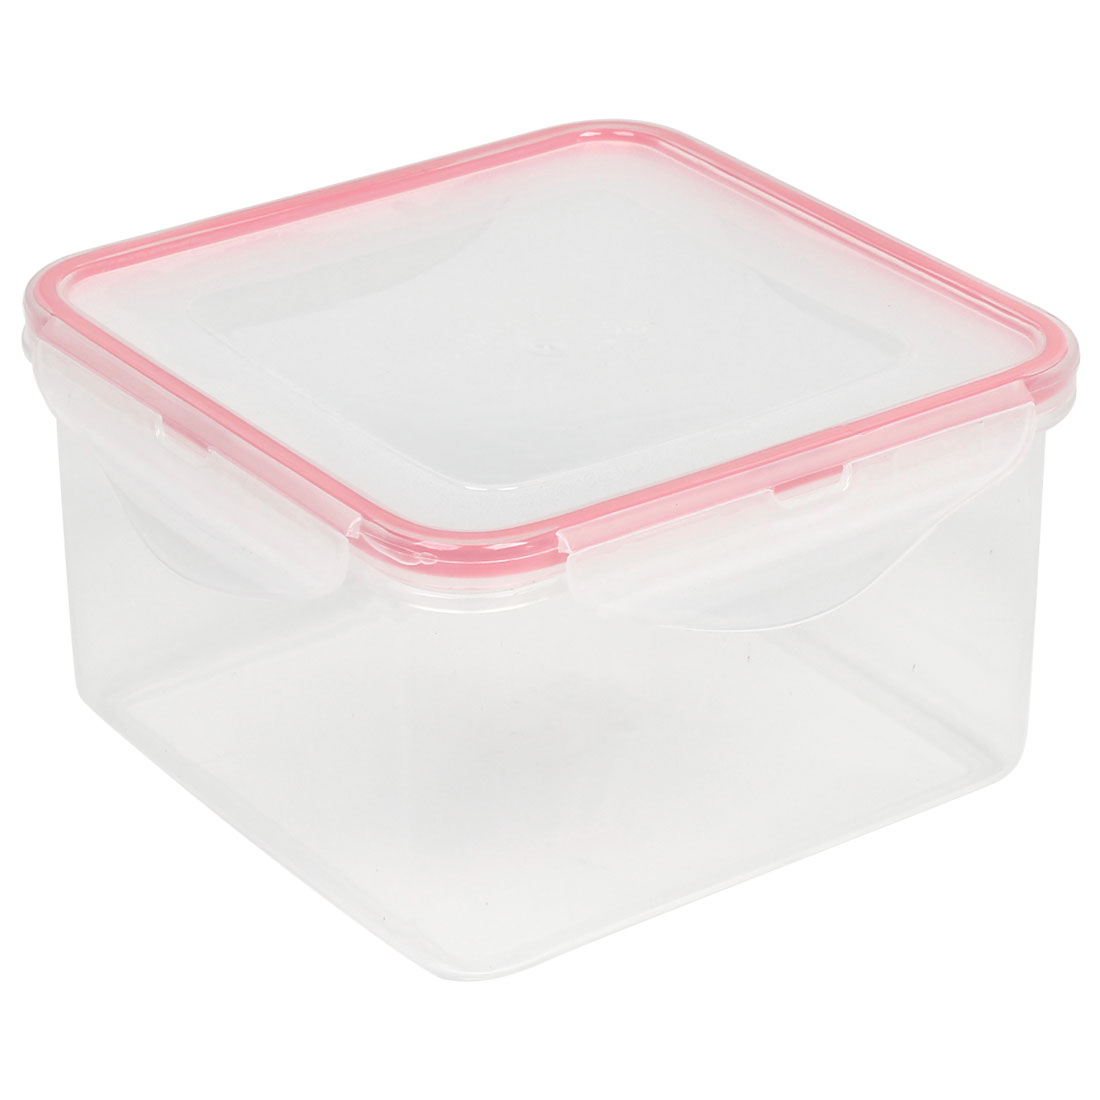 Squar Shaped Outdoor White Food Container Dinner Case Box Cover Pink